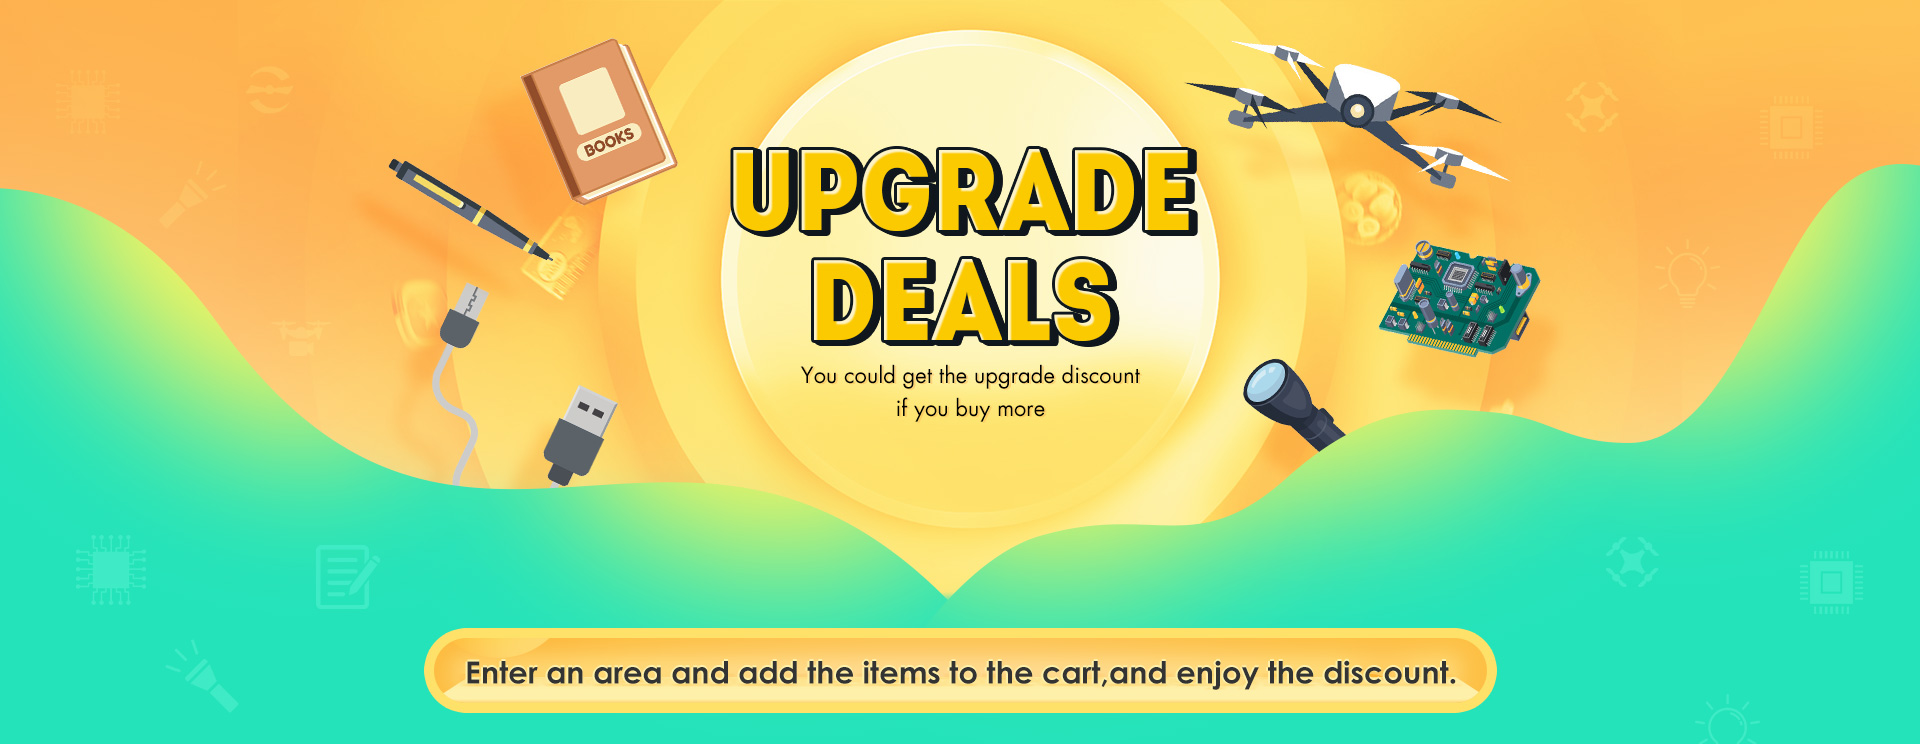 Upgrade Deals Promotion�Extra 35% OFF